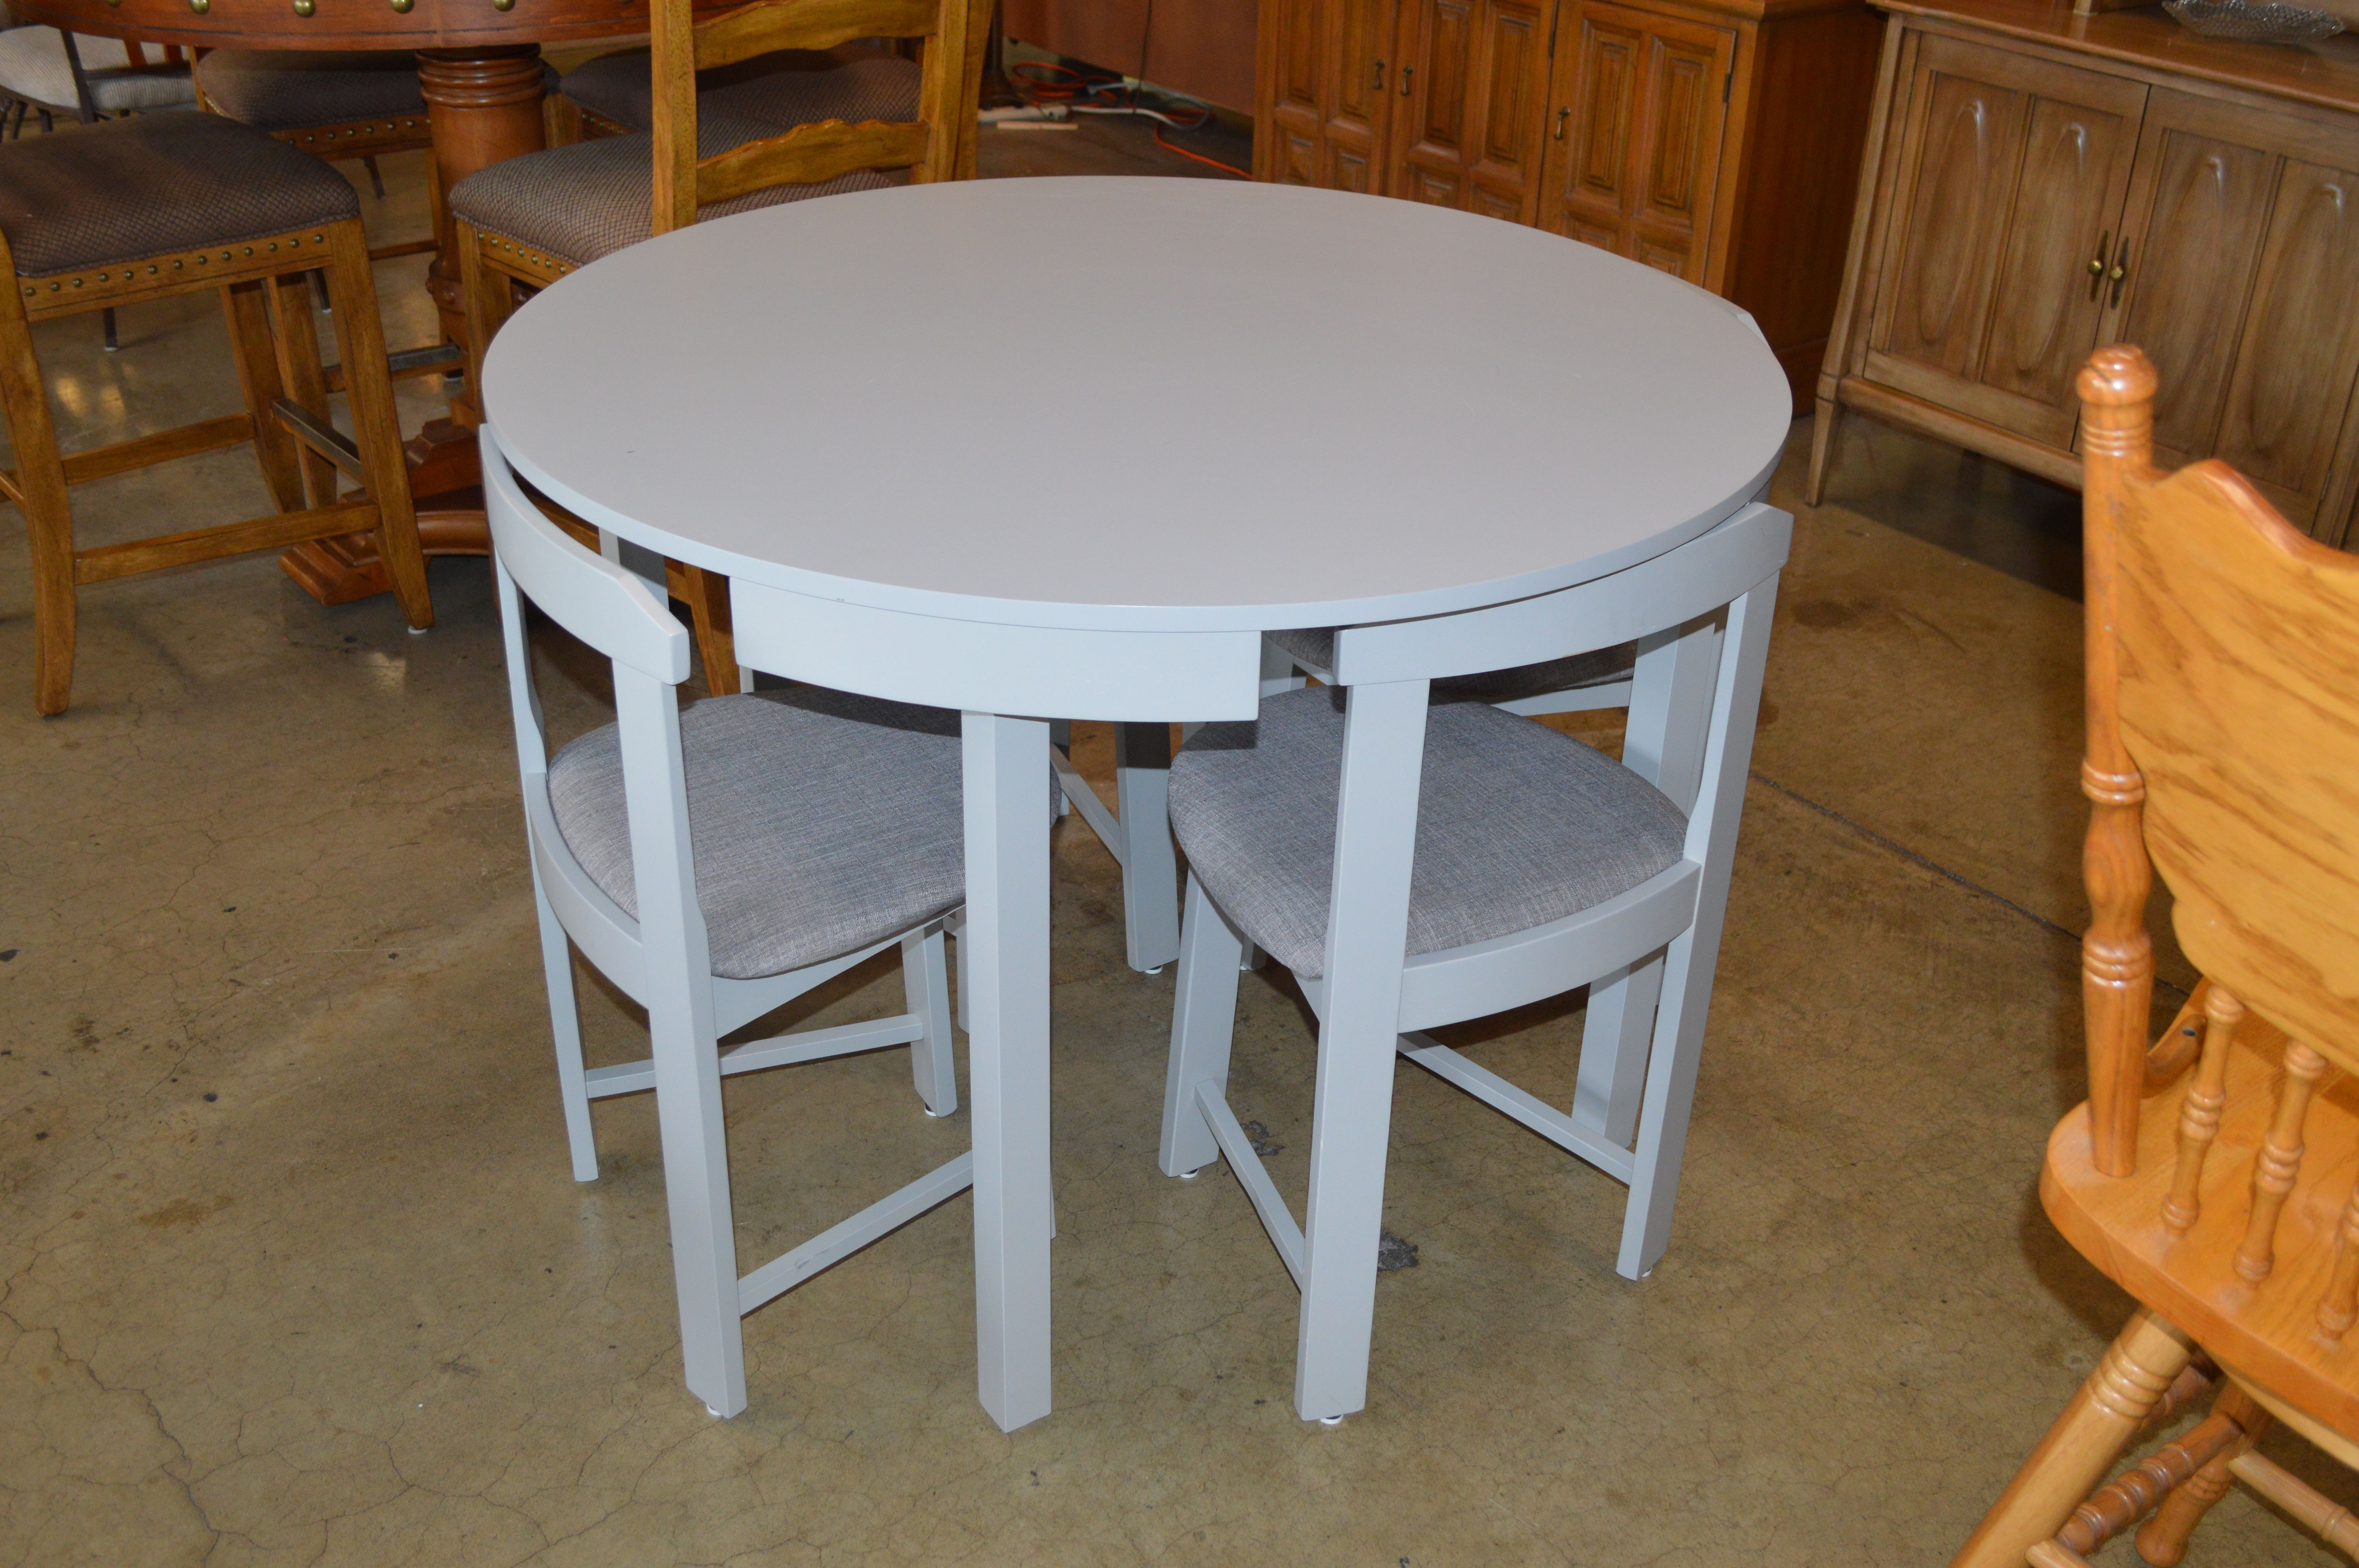 Table With Chair Table Home Decor Chair